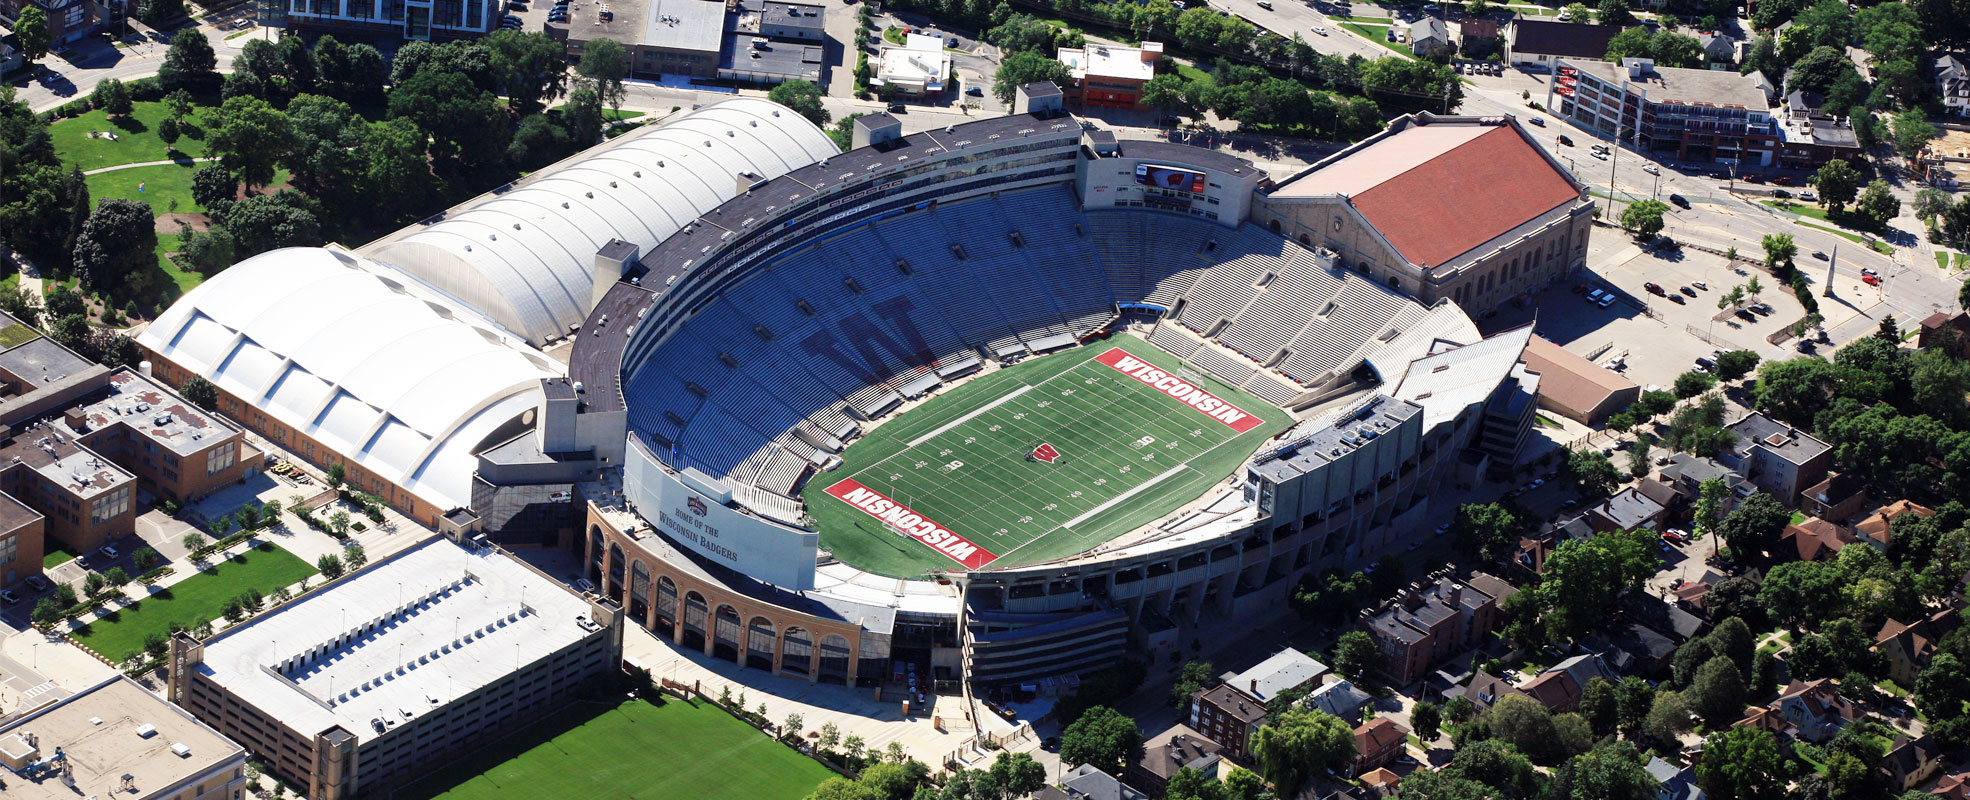 An ariel photo of a more modern Camp Randall complex from 2015 that contains Camp Randall Stadium, the Field House, The SHELL, and surrounding buildings but not during a game.